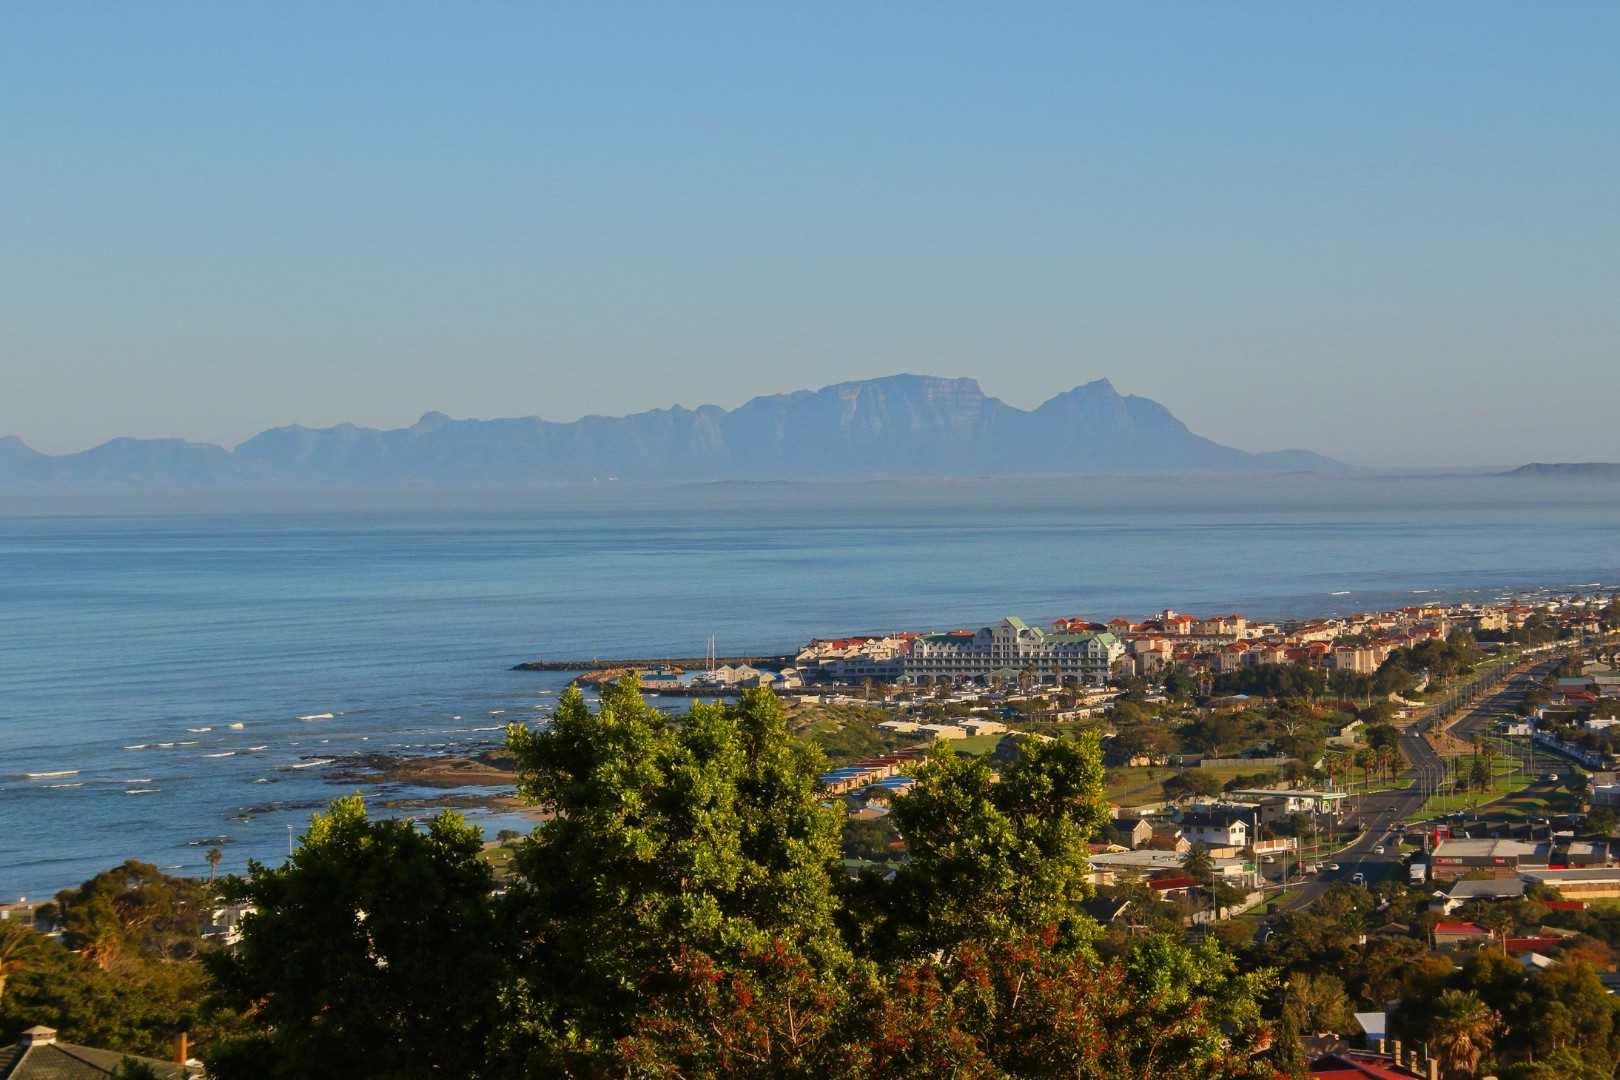 False Bay sea view with Table Mountain in the distance